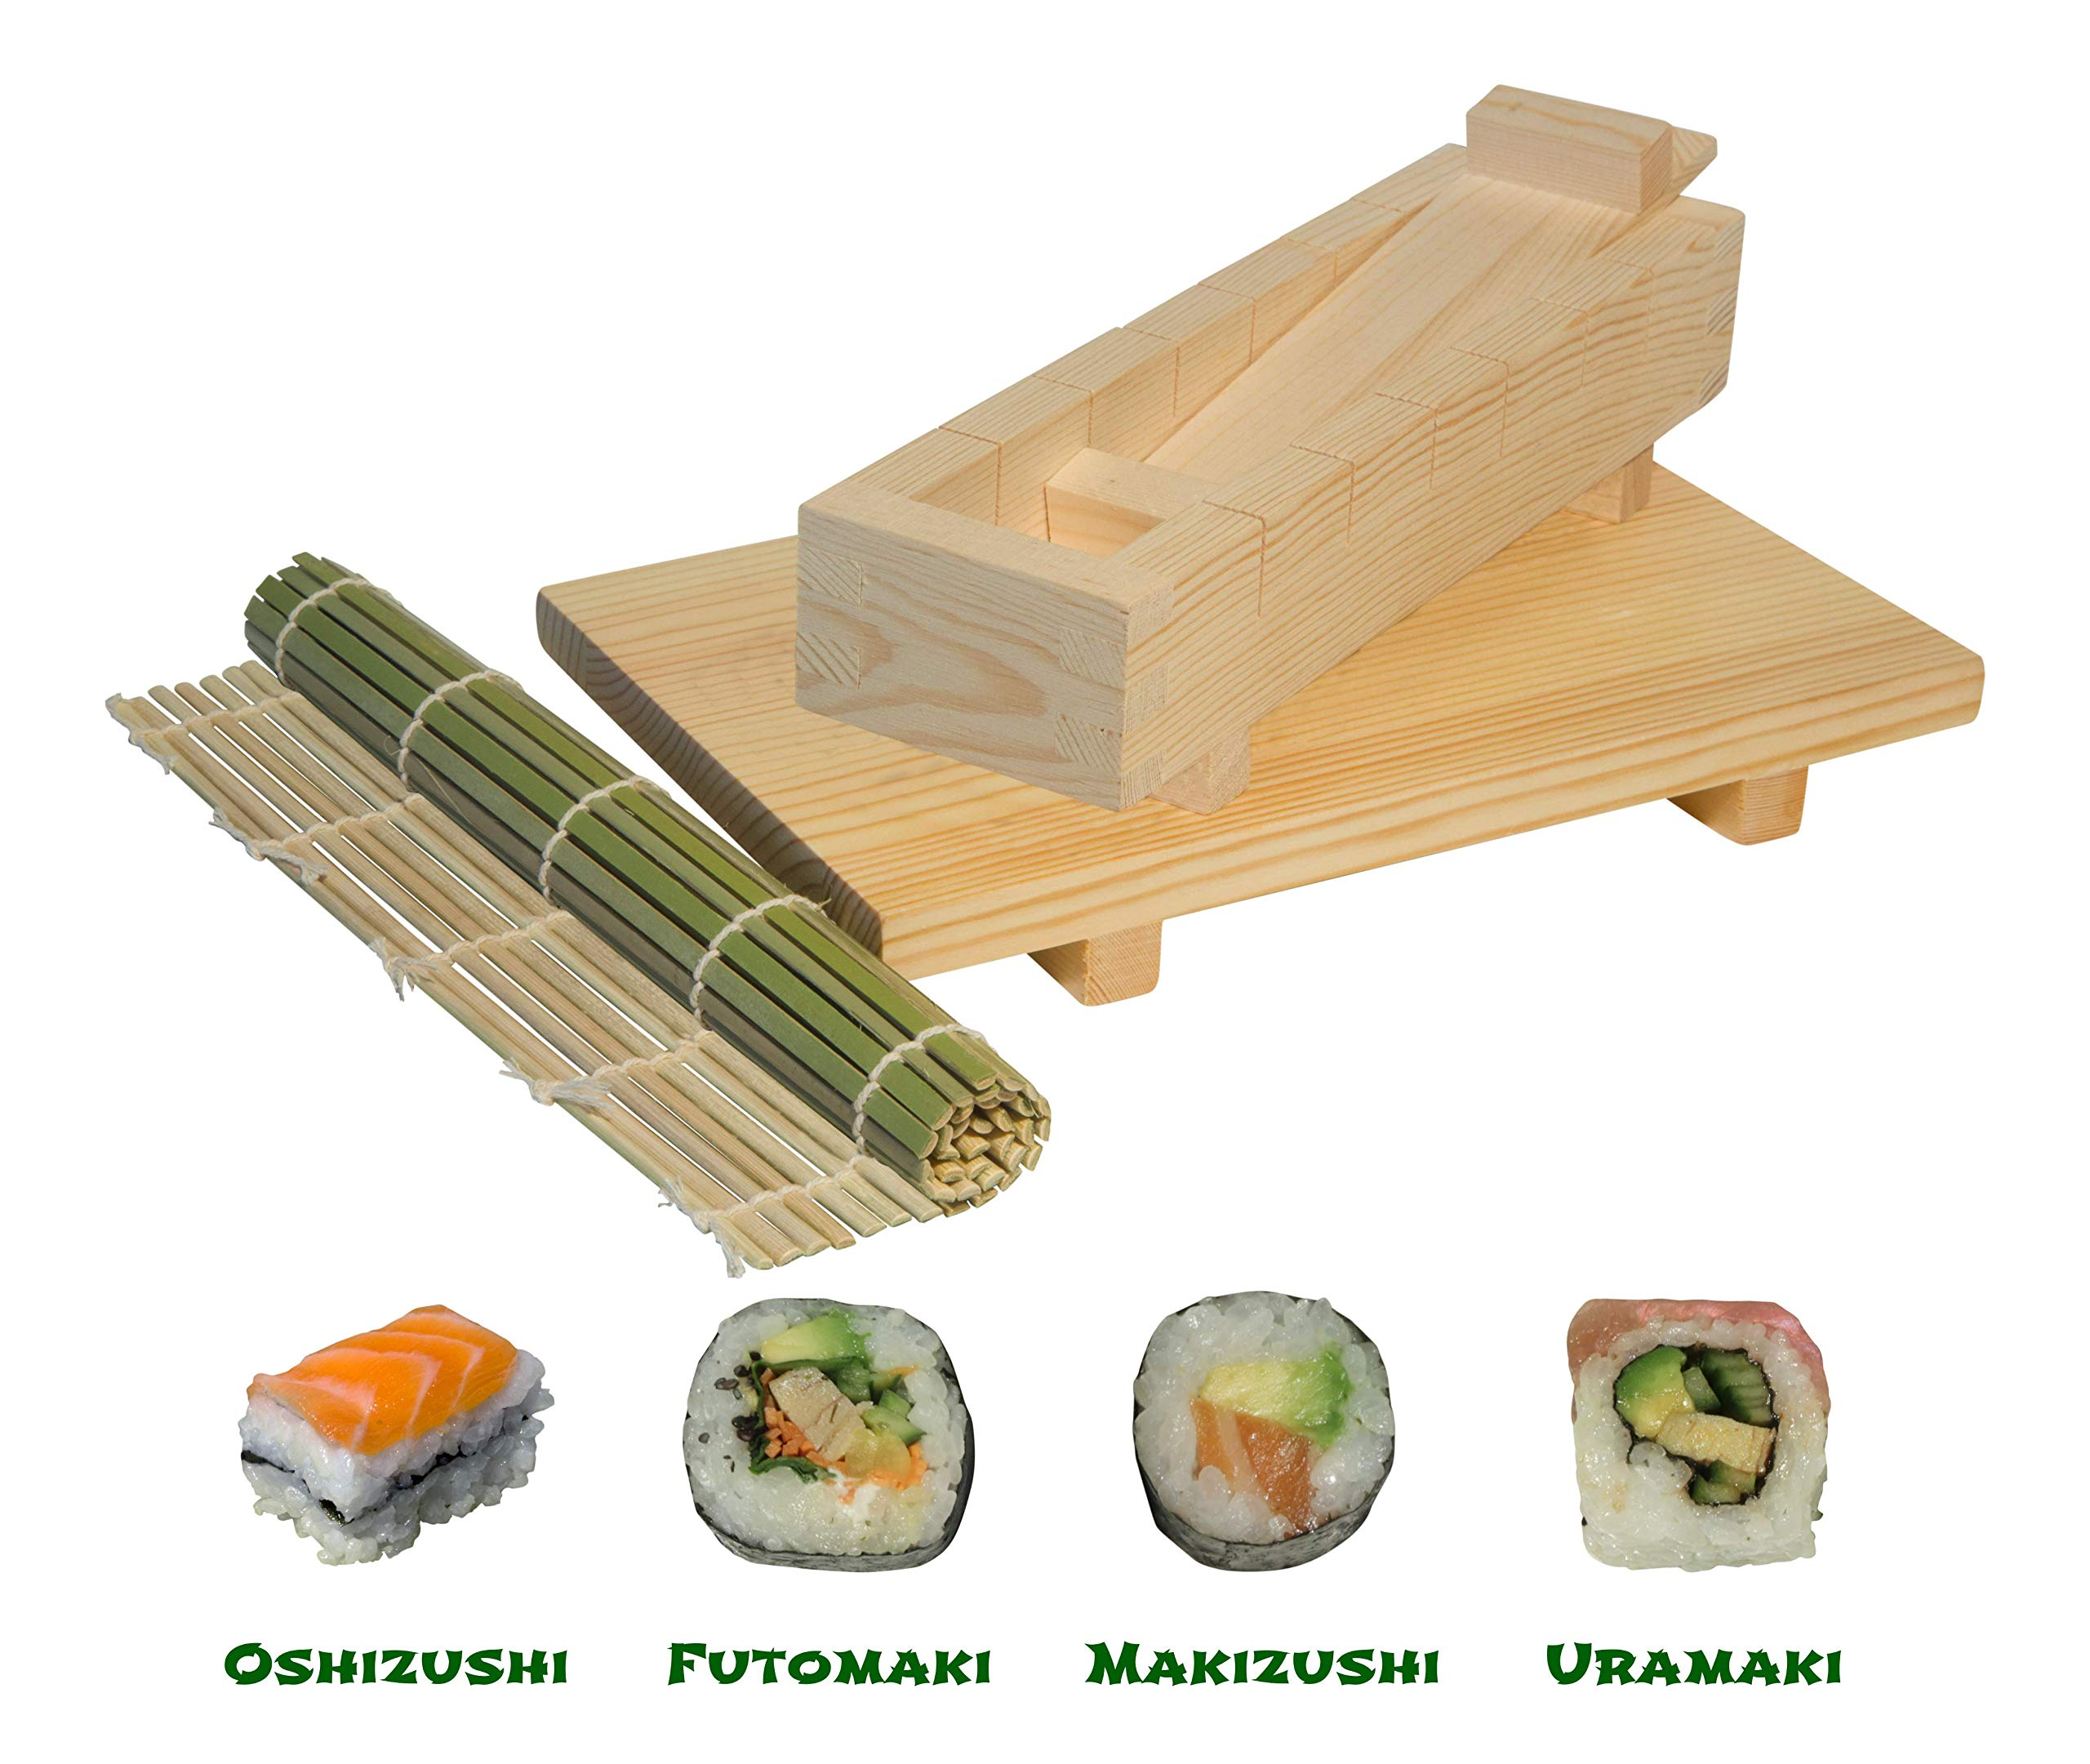 Sushi Making Kit - 4 in 1 Wooden Sushi Maker for Beginners and Chefs with Bamboo Roller Mat, Plate and Knife - Full Instructions + Ebook Included - Durable & Food Grade Materials by Sushefu